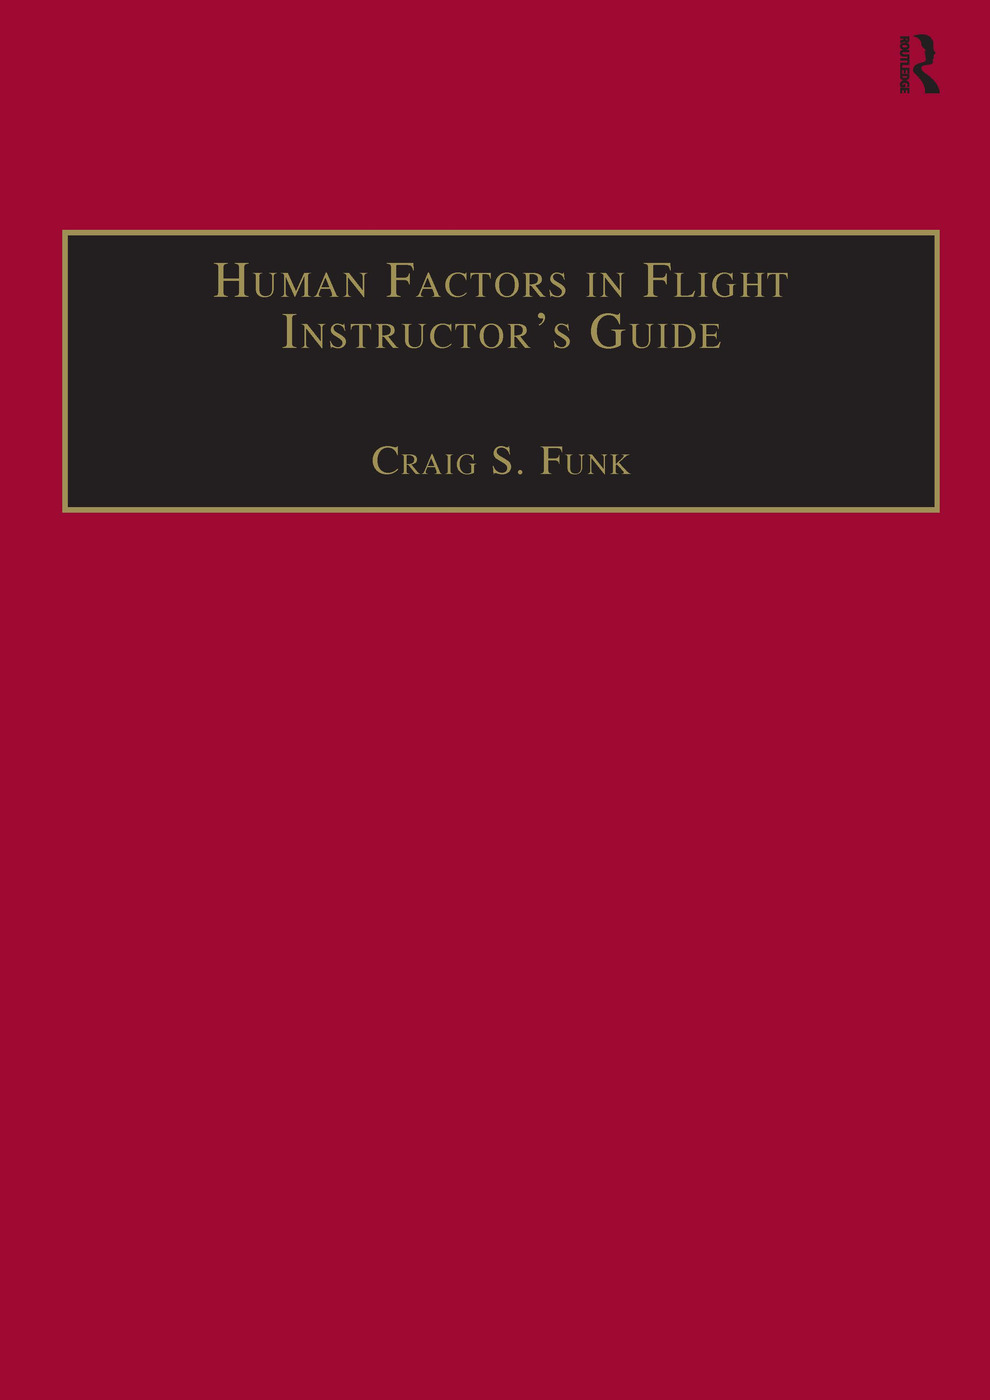 Human Factors in Flight Instructor's Guide